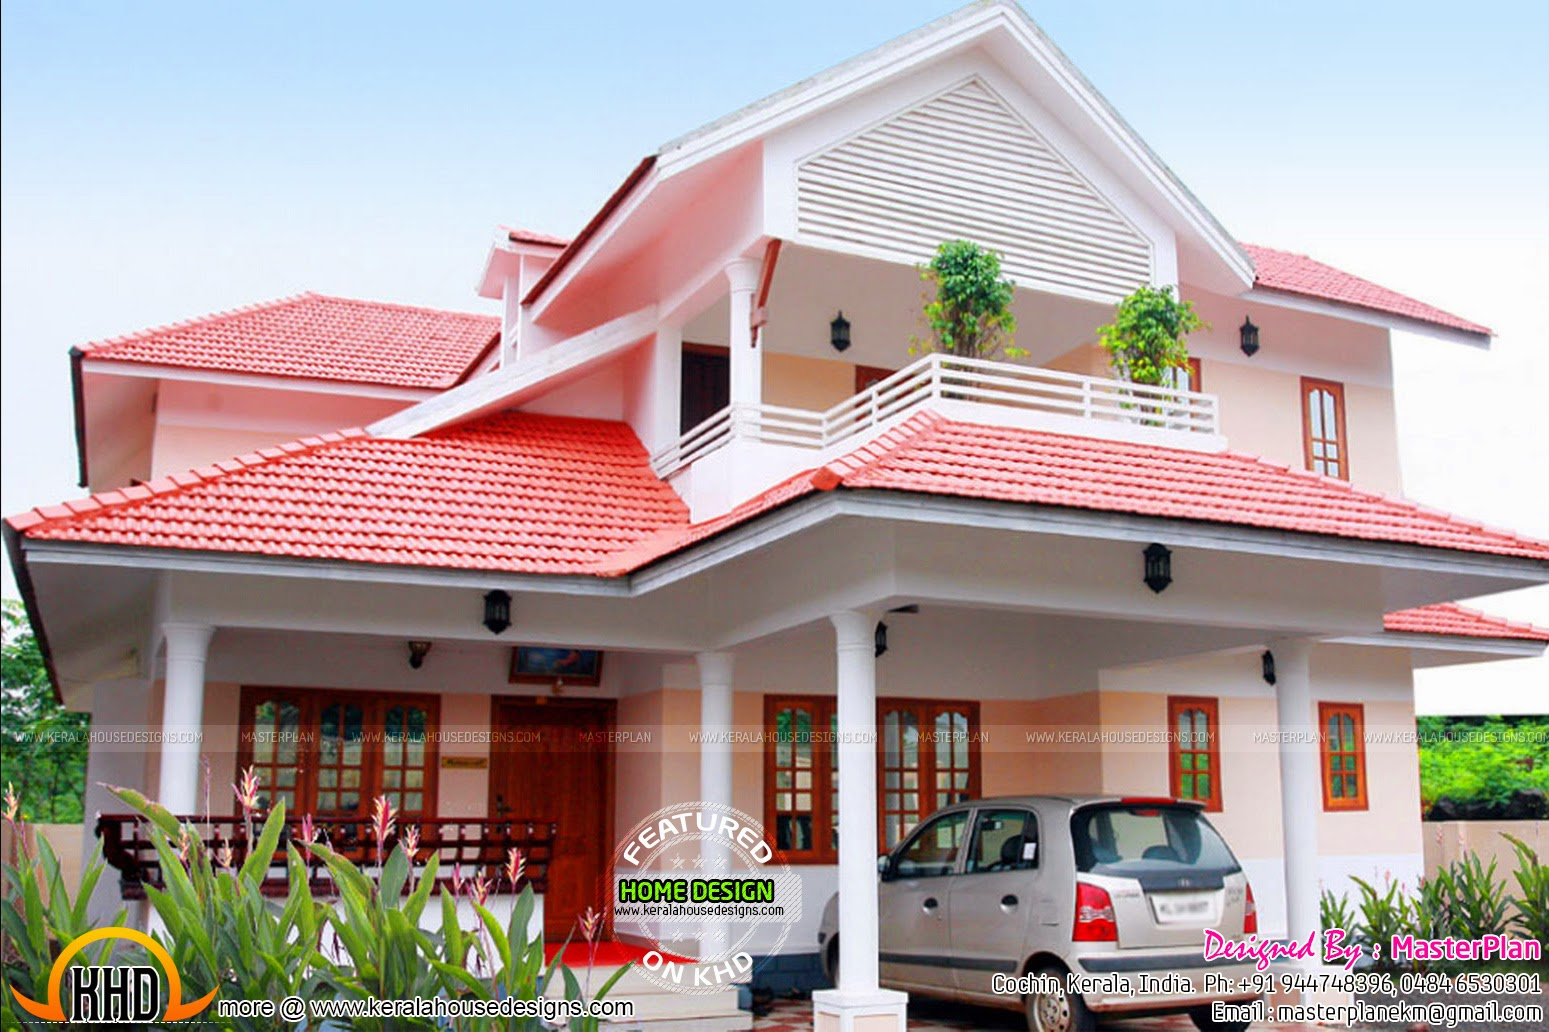 Beautiful finished house in kerala kerala home design for New model houses in kerala